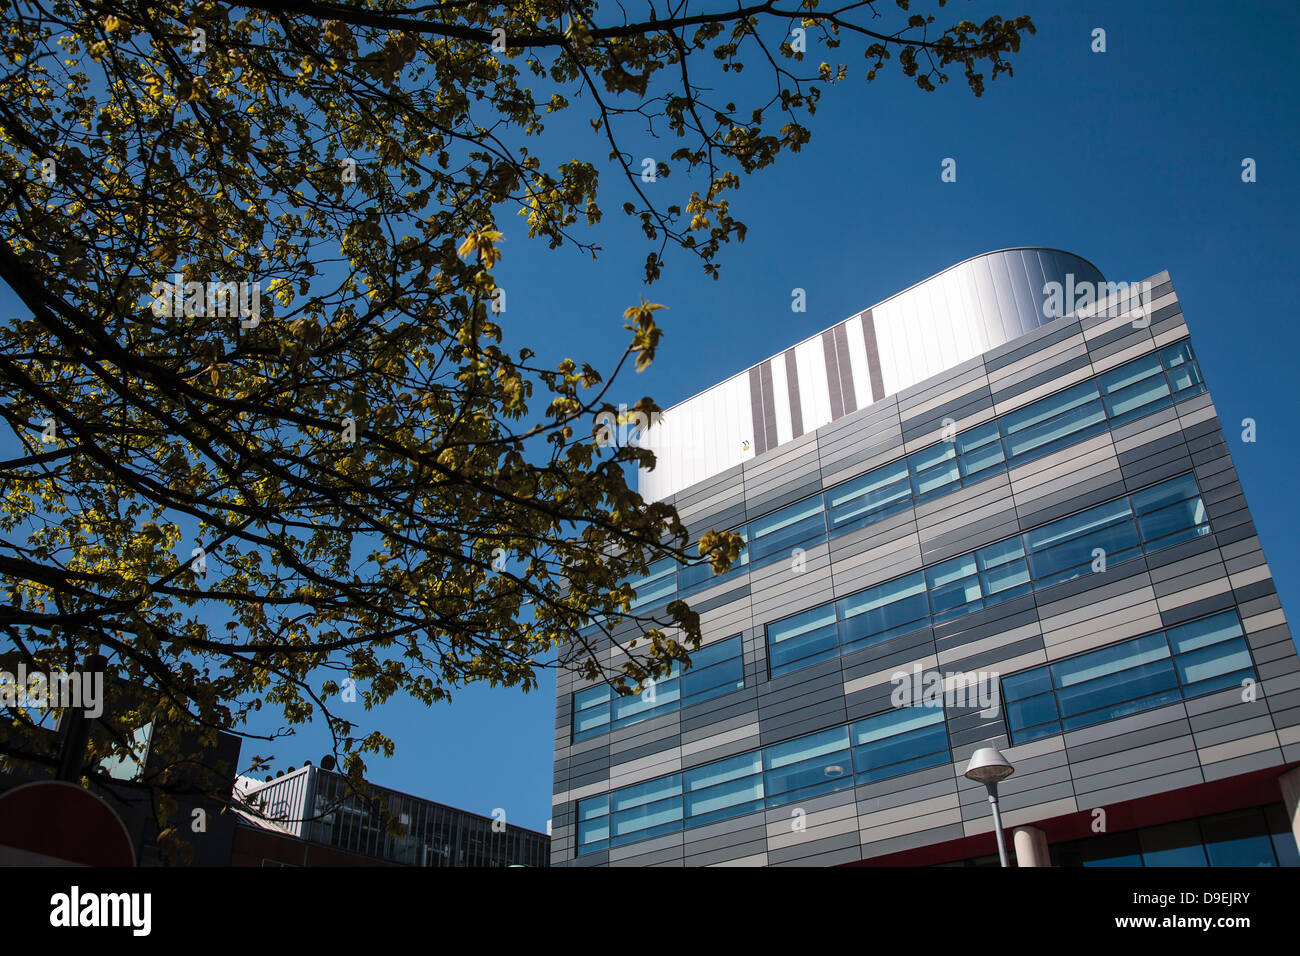 The Strathclyde Institute of Pharmacy and Biomedical Sciences building on Cathedral Street. - Stock Image